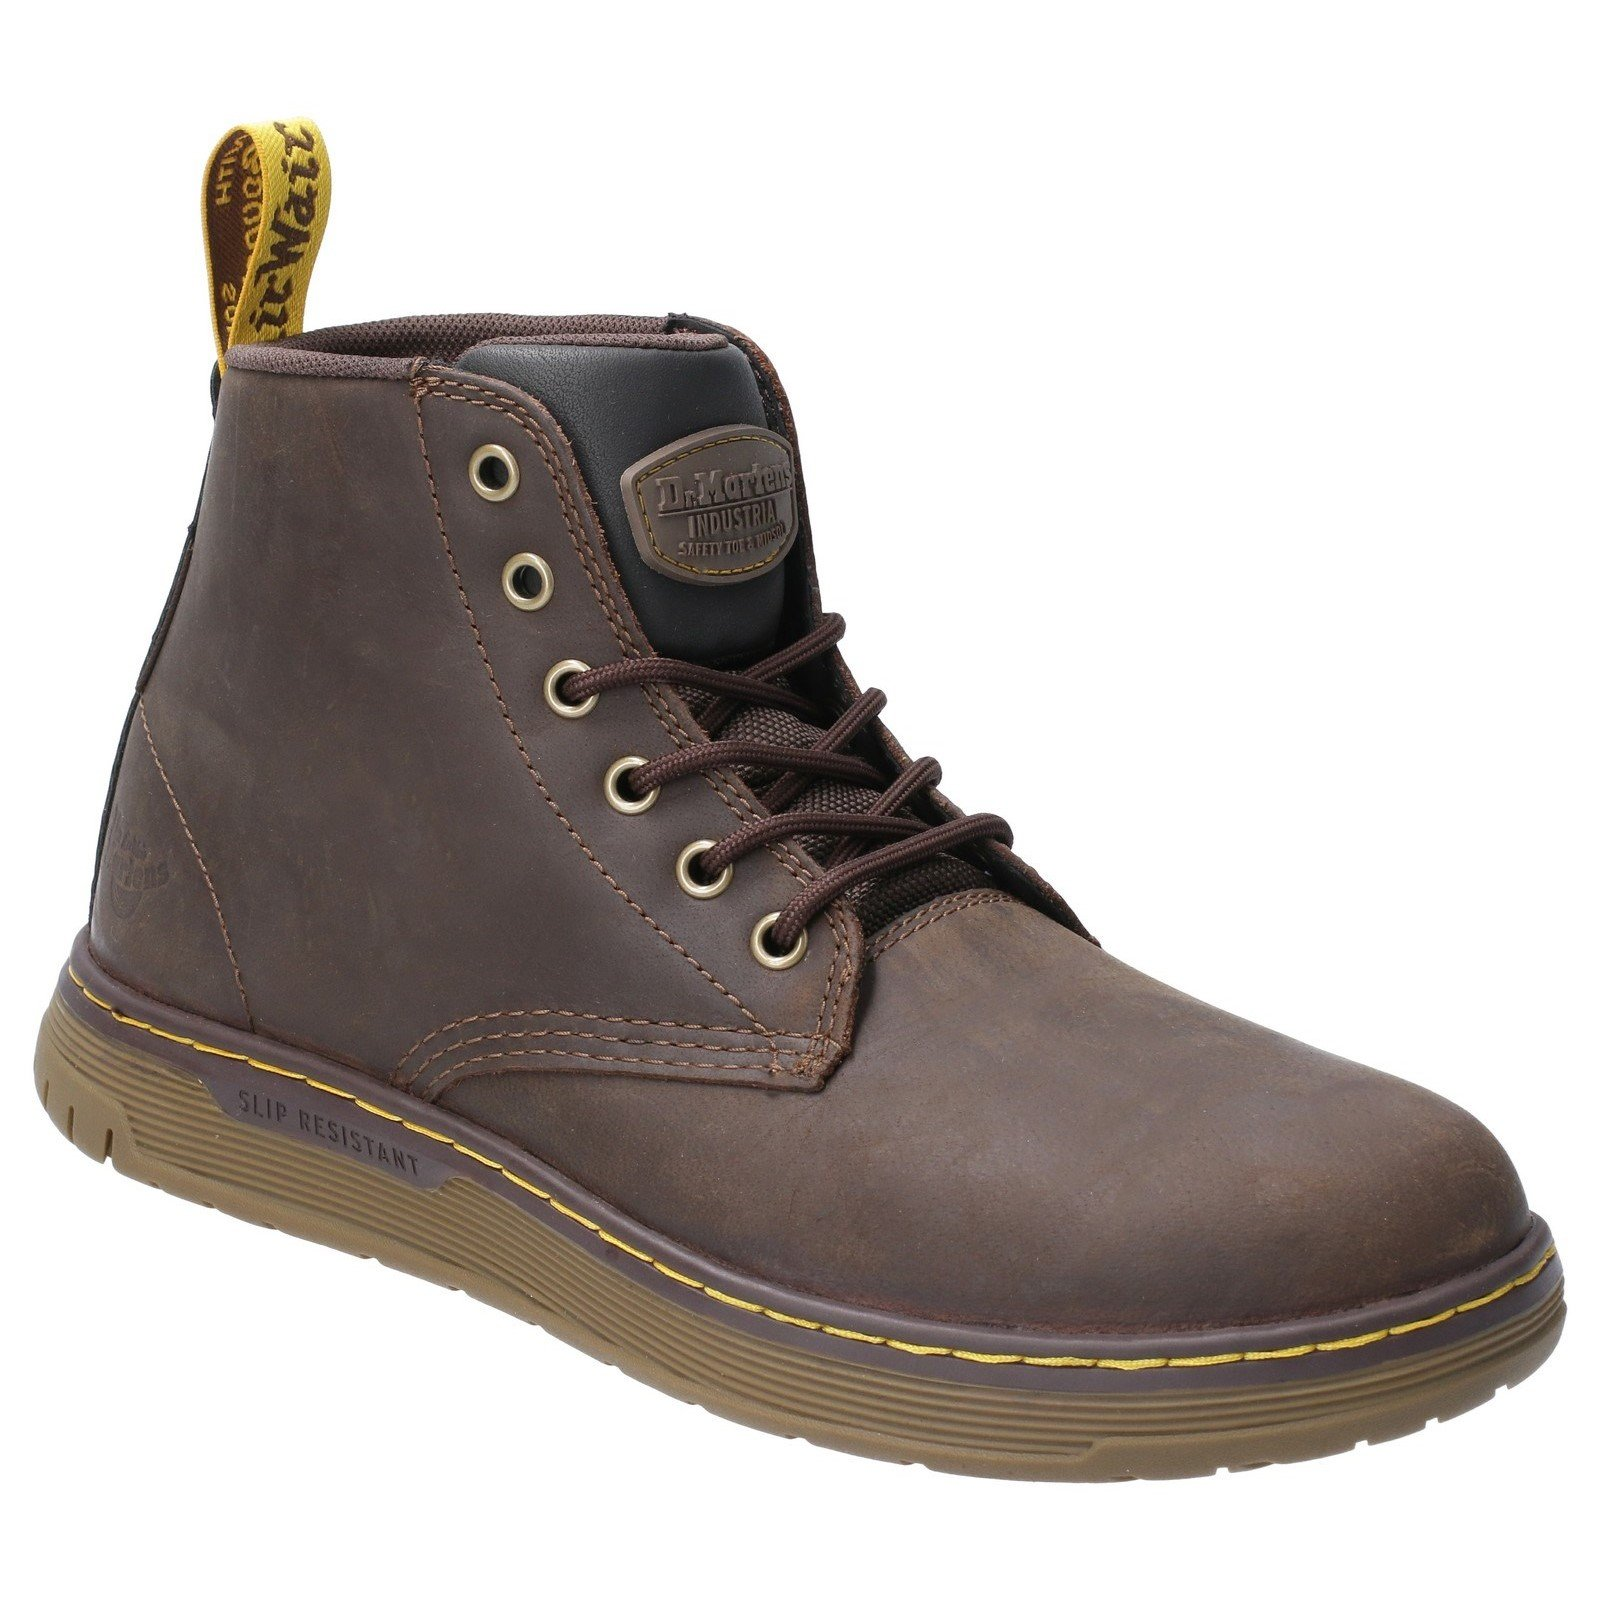 Dr Martens Unisex Ledger Lace Up Safety Boot Brown 29501 - Brown 10